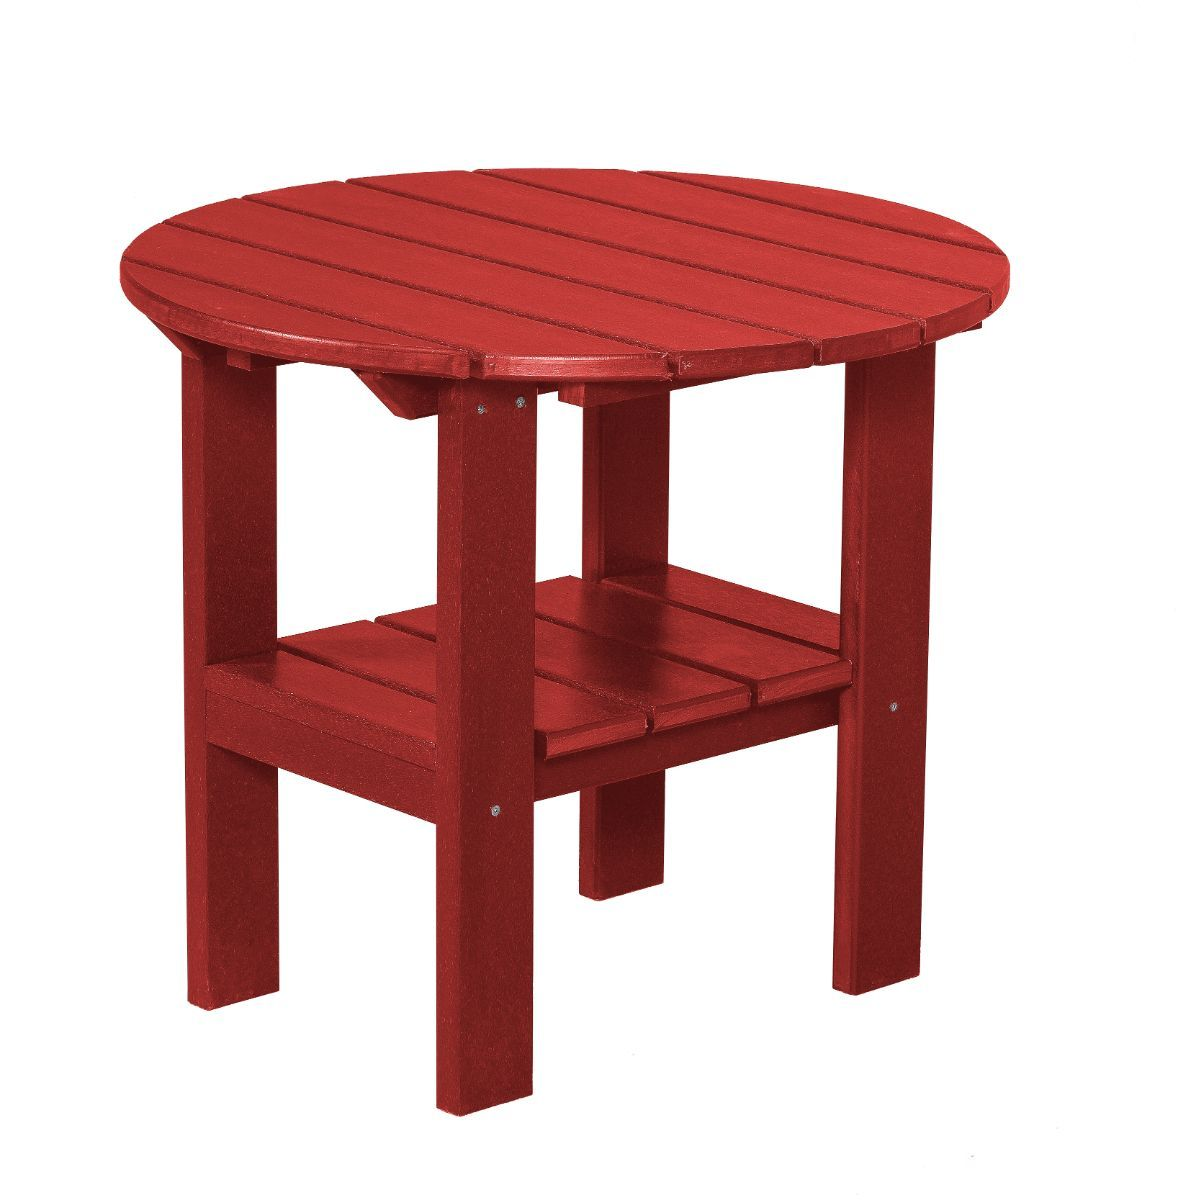 Cardinal Red Odessa Round Outdoor Side Table